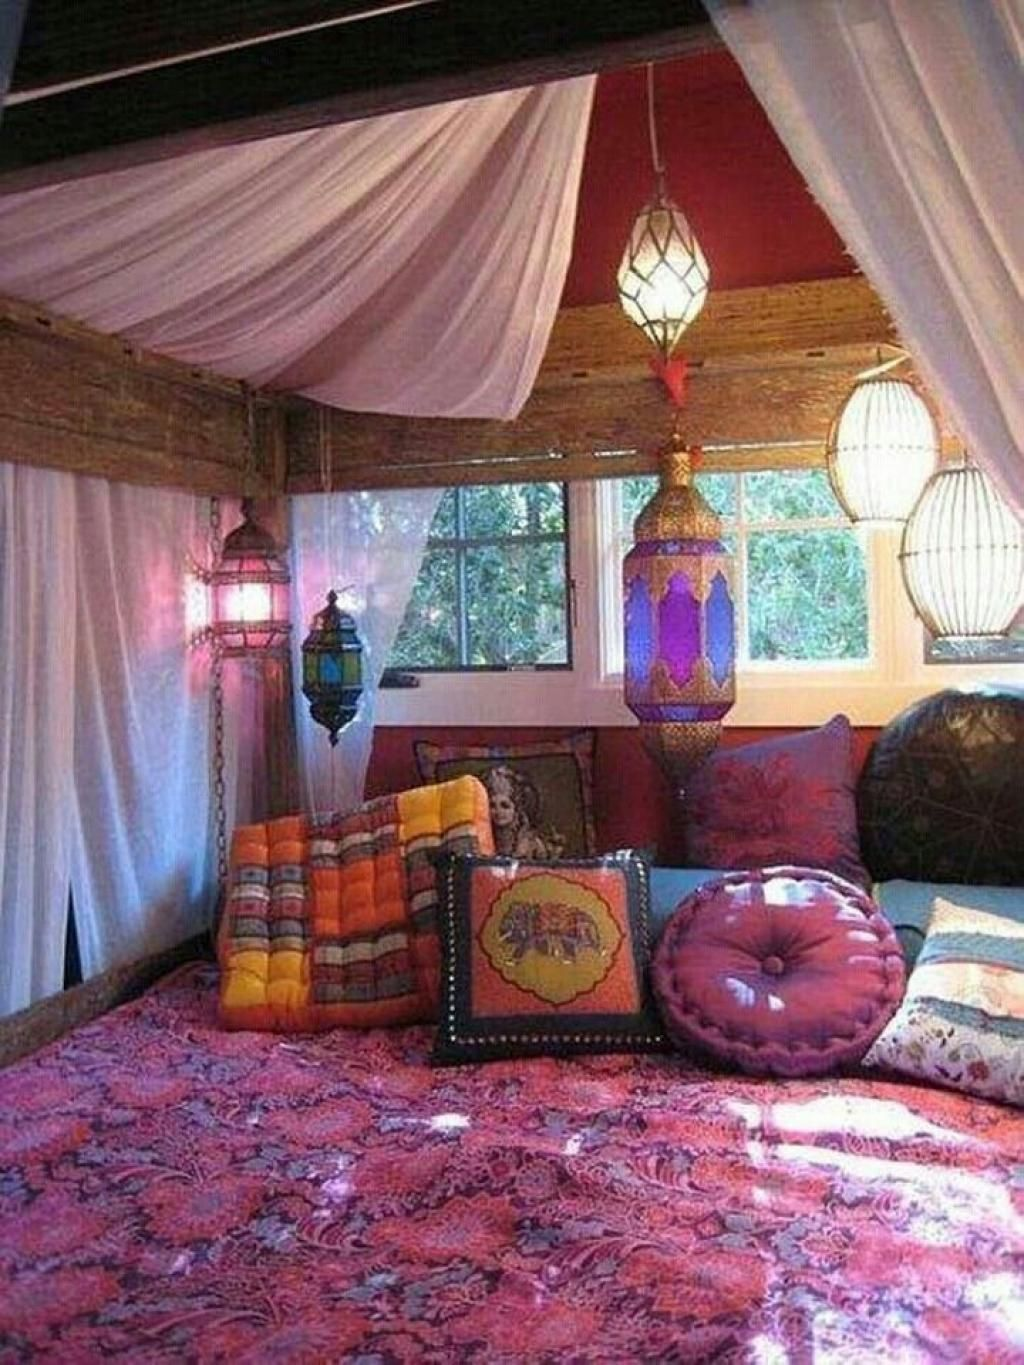 Meditation Room Design Ideas Part - 34: Clasic Romantic Interior Bedroom Design Ideas With Lighting Design And With  Hanging Lamp Meditation Room Ideas